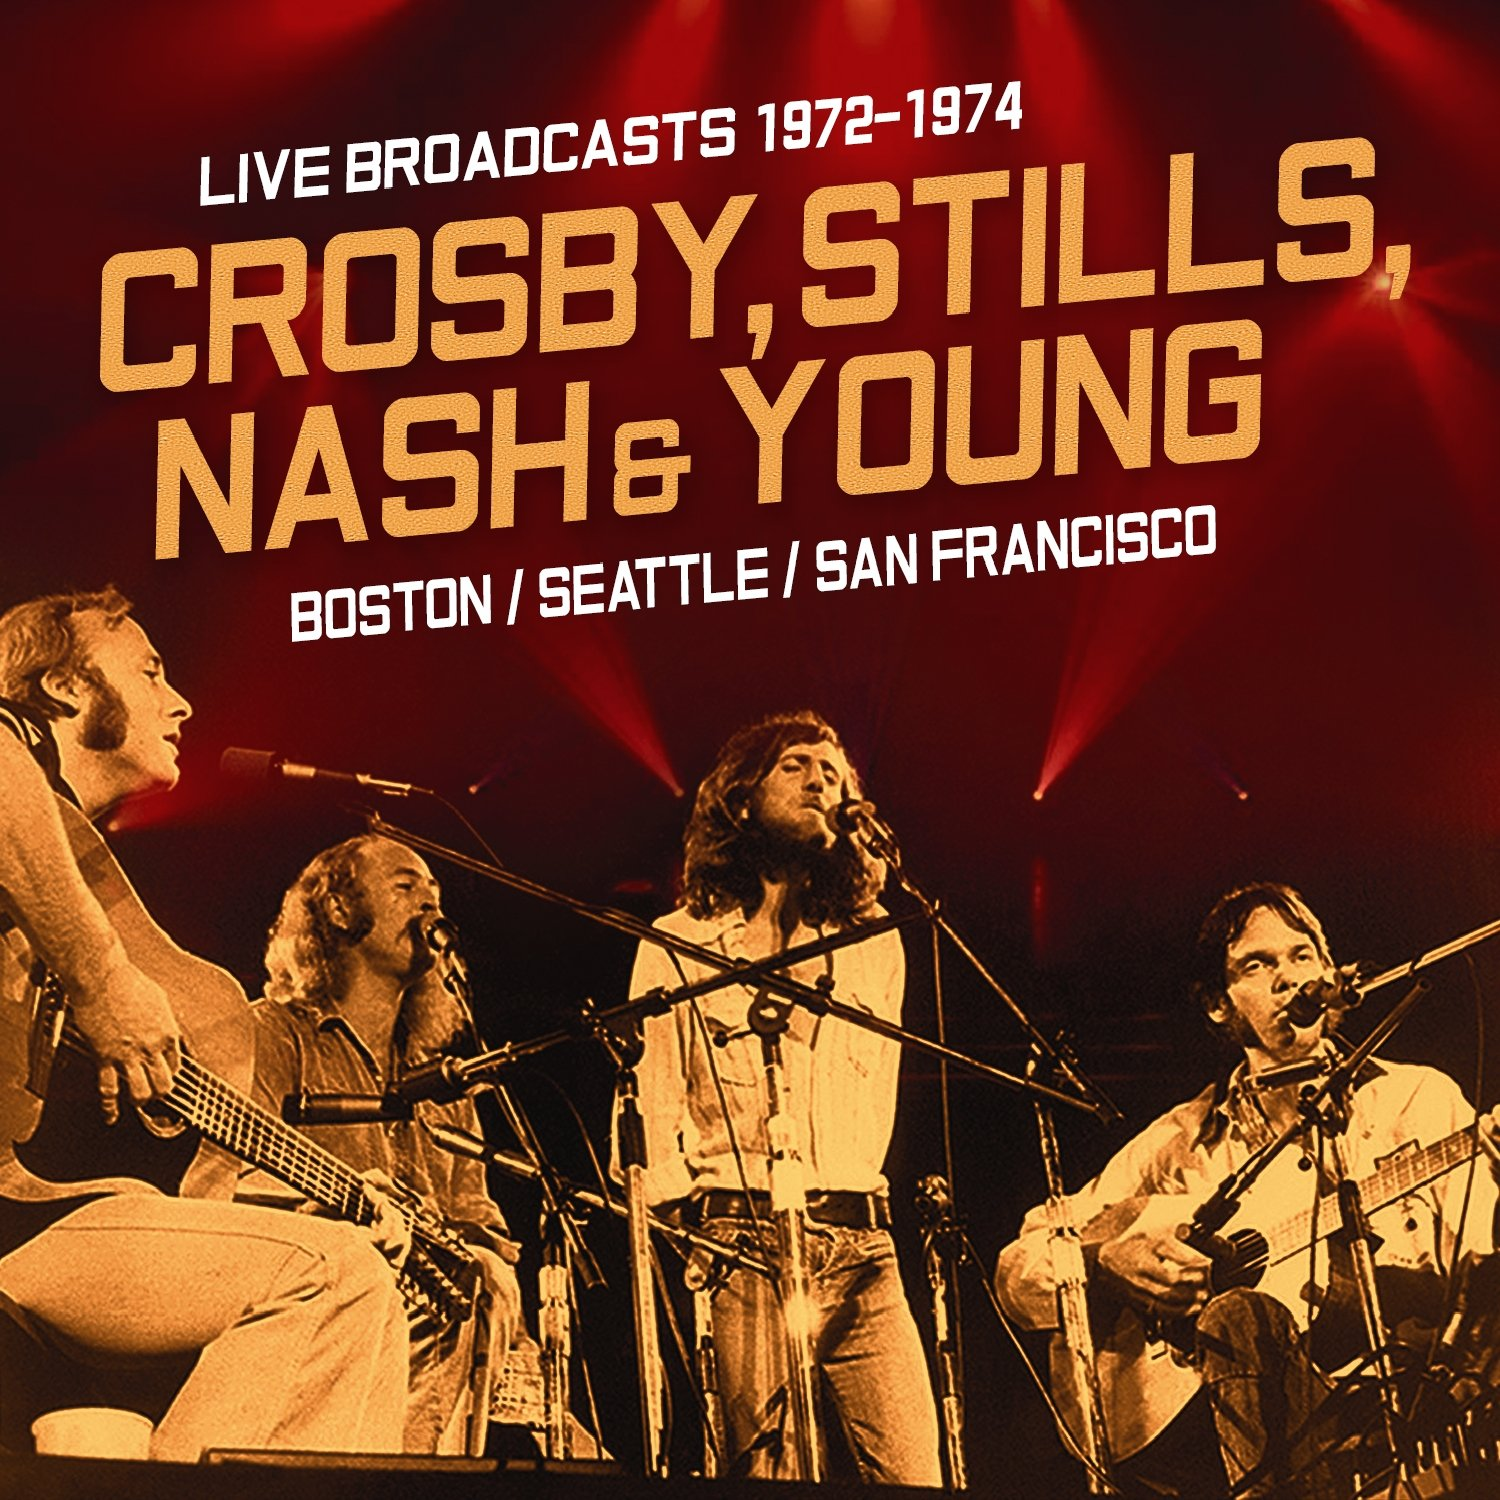 Live Broadcasts 1972-1976 by Video Music, Inc. (Image #1)